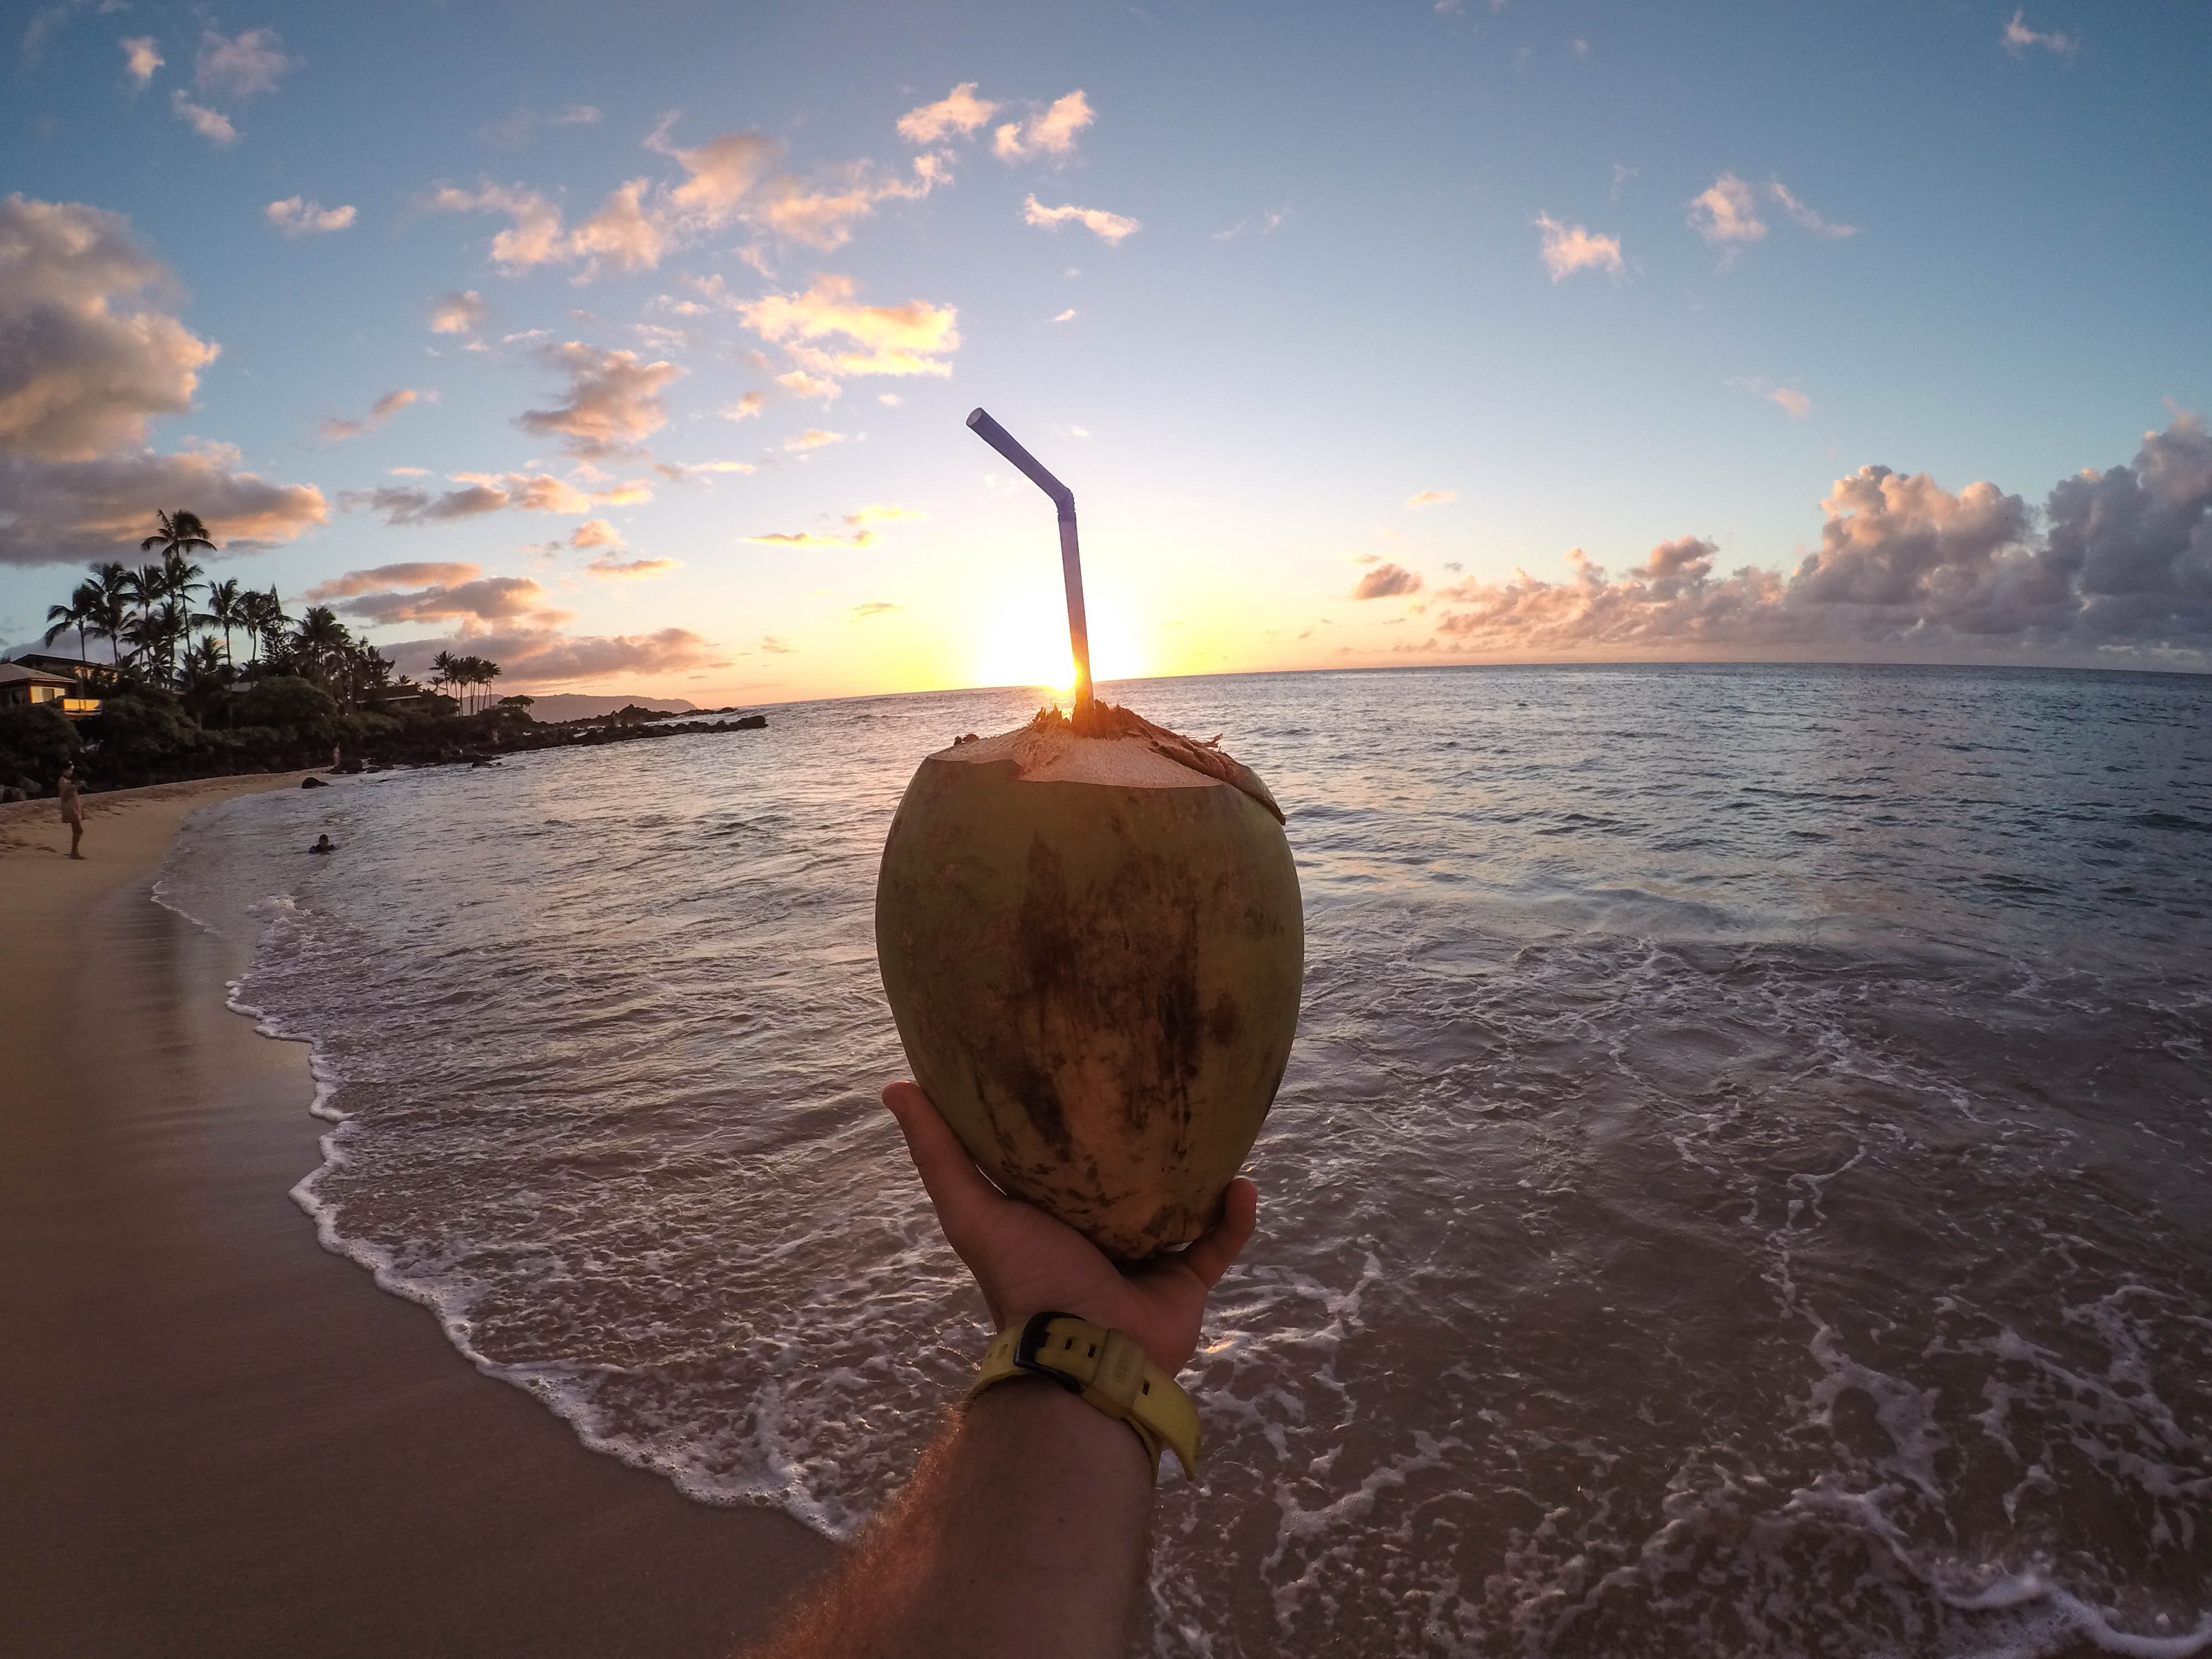 Drinking with a straw out of a fruit in Hawaii.